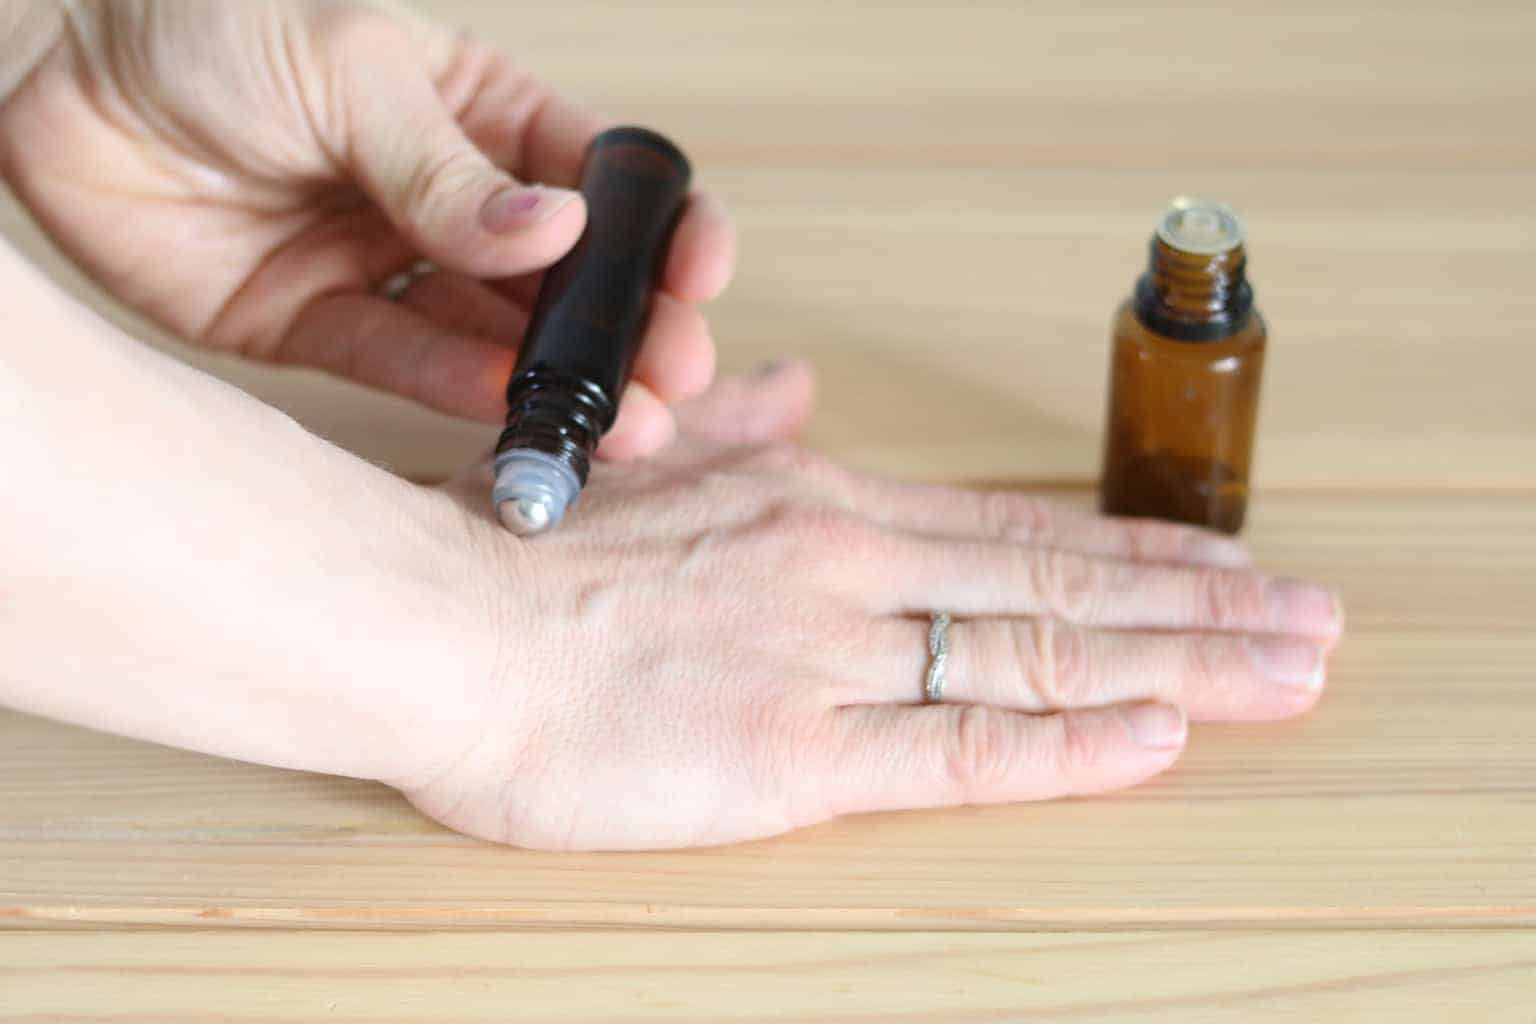 to make an essential oil roller bottle add 15-20 drops of essential oil to a amber color, glass, 10mL roller bottle. Then top off with a carrier oil. Apply topically to area of concern as needed.